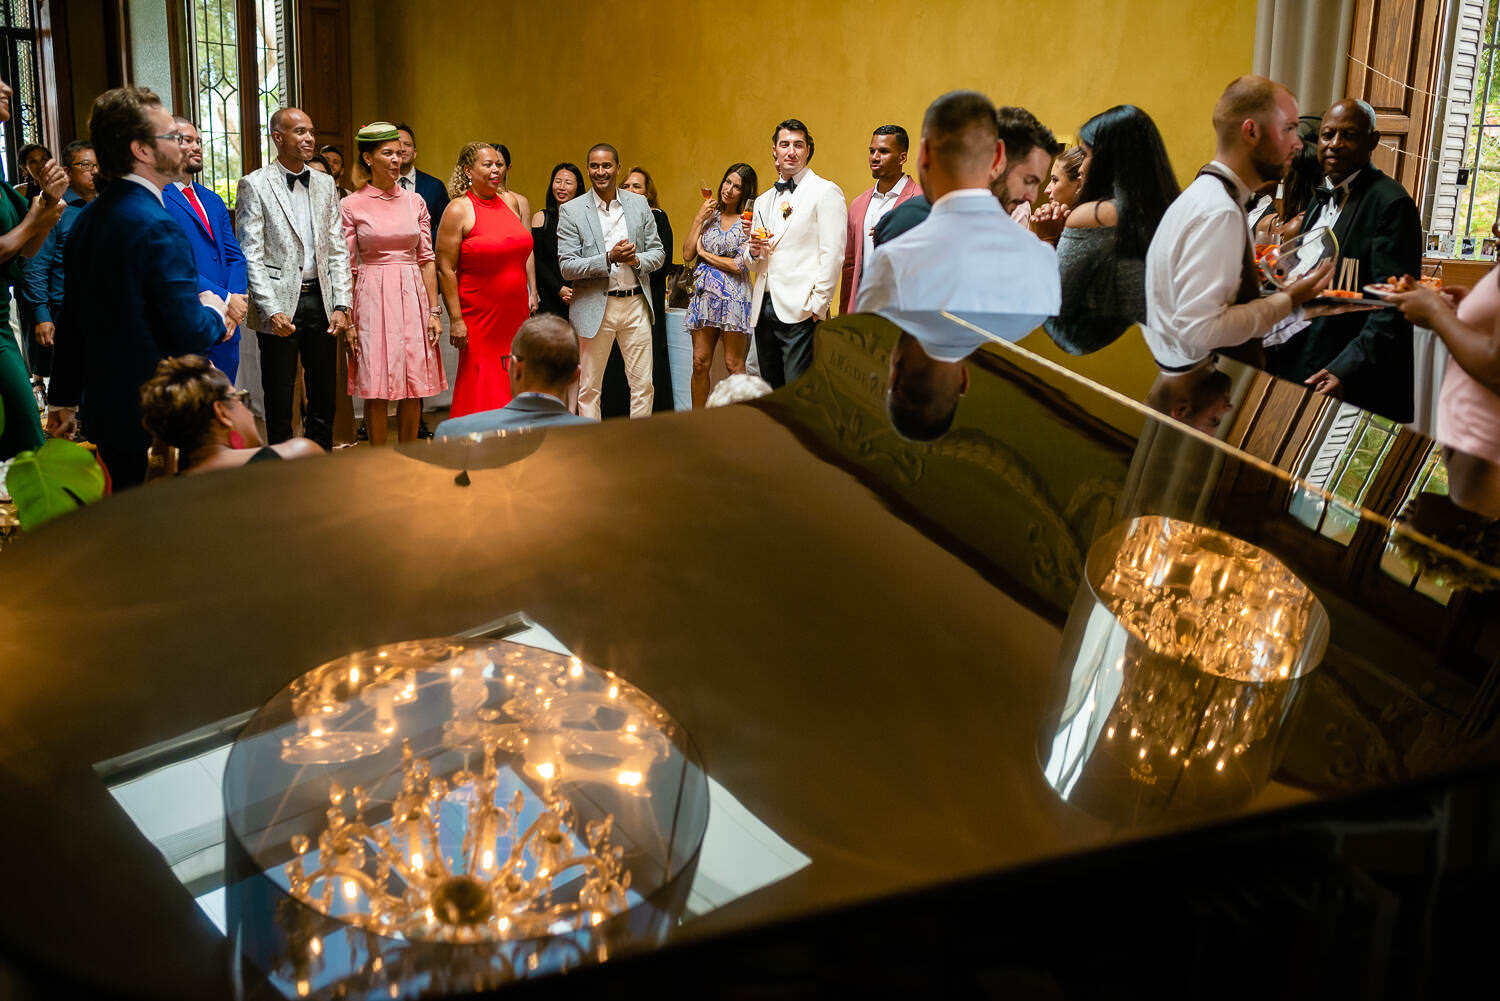 guests at the reception party on the wedding day in Biblioteca Almirall Barcelona